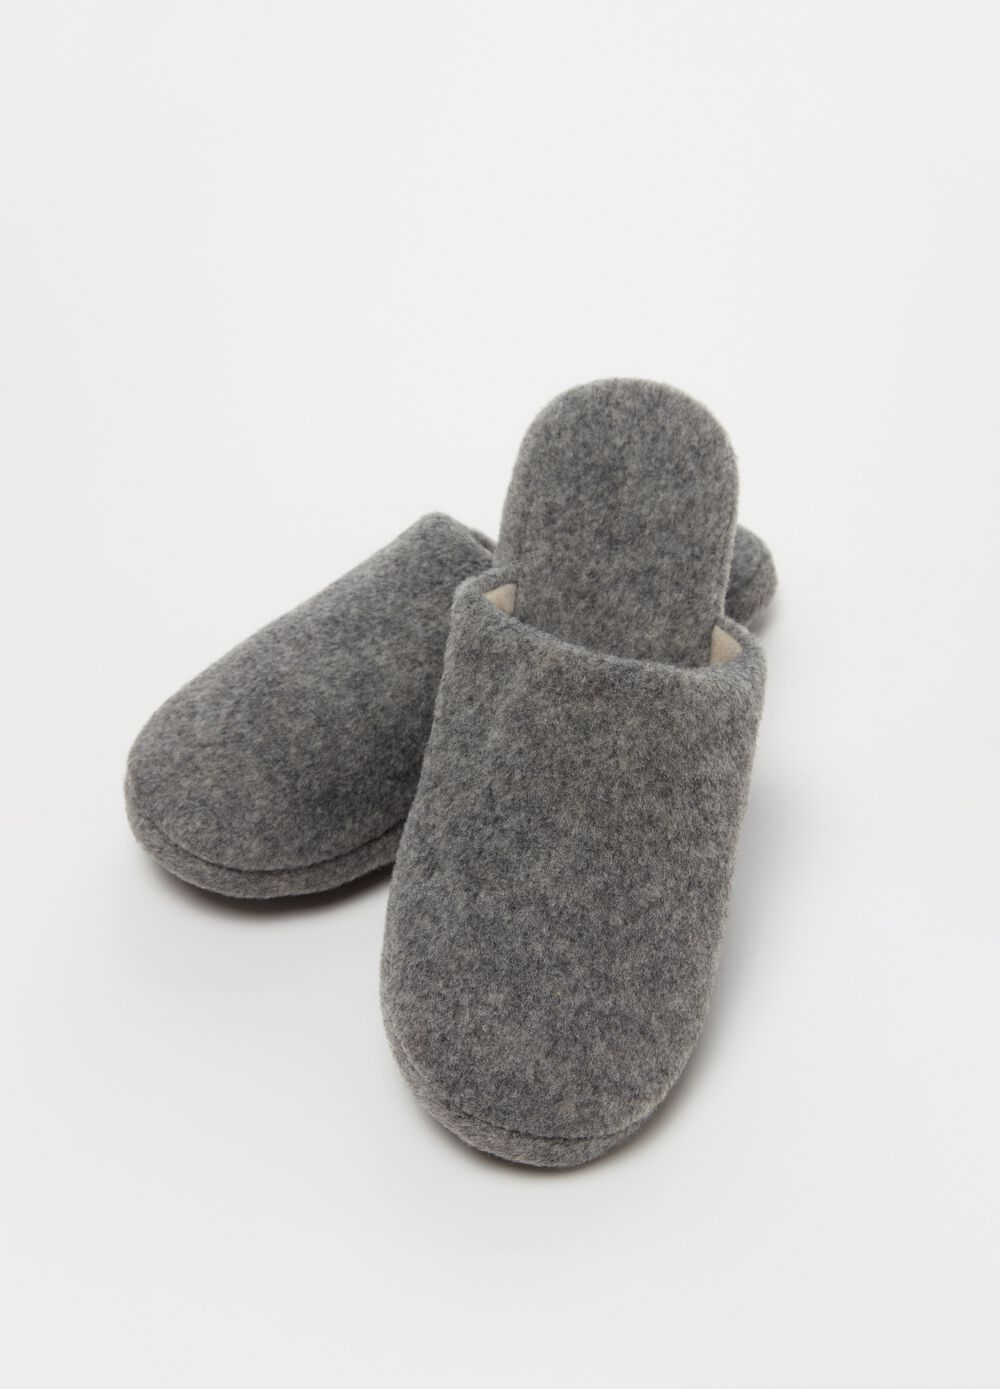 Fabric slippers with flat heel